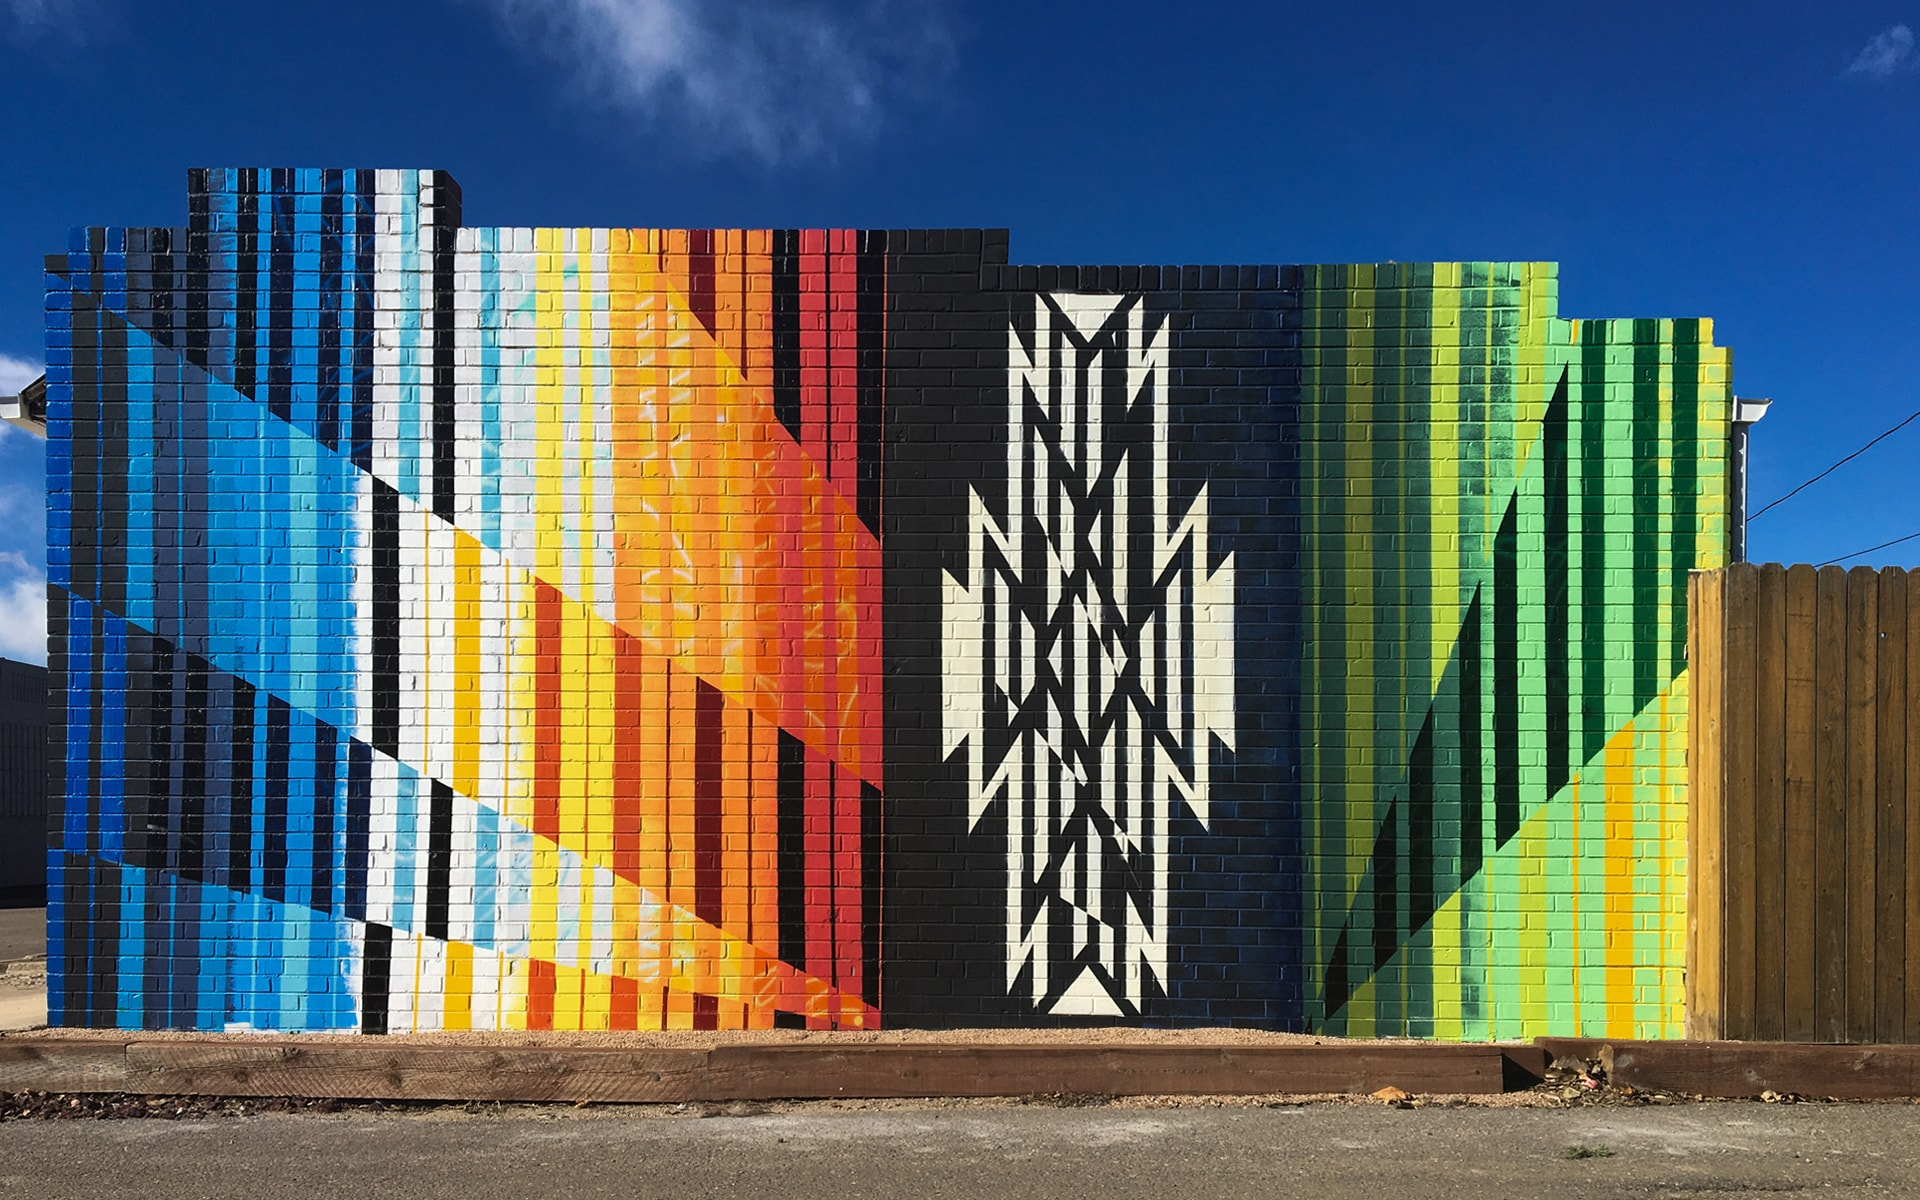 Denver mural by Anthony Garcia and augmented by Mussa